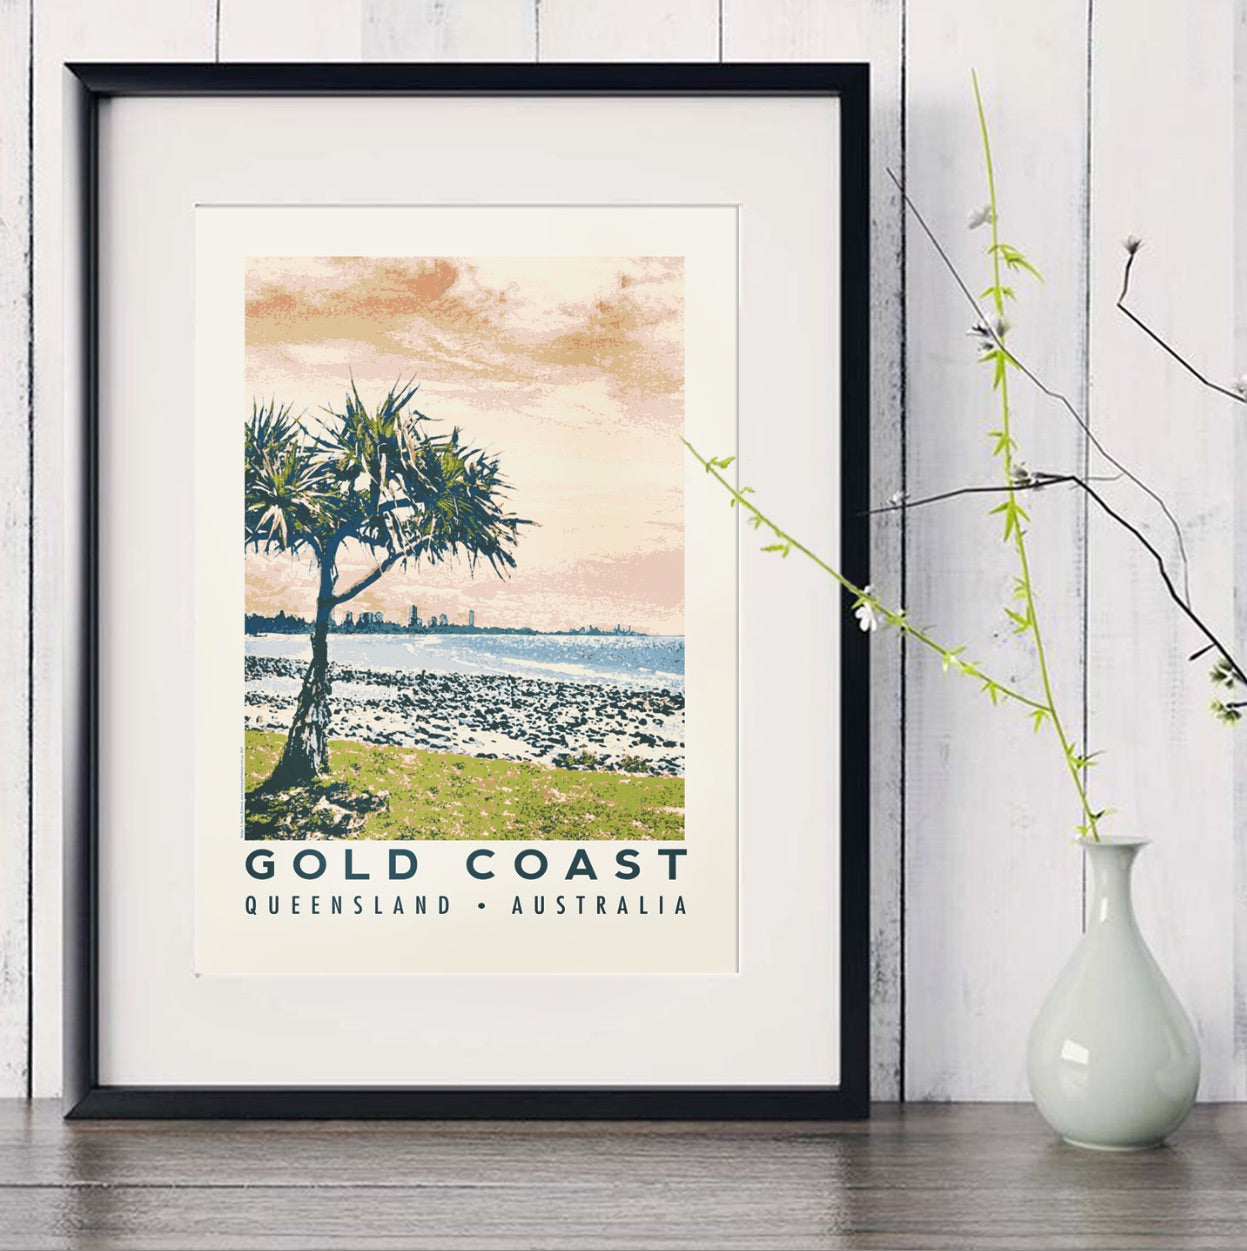 Burleigh Heads art print in black frame with white vase